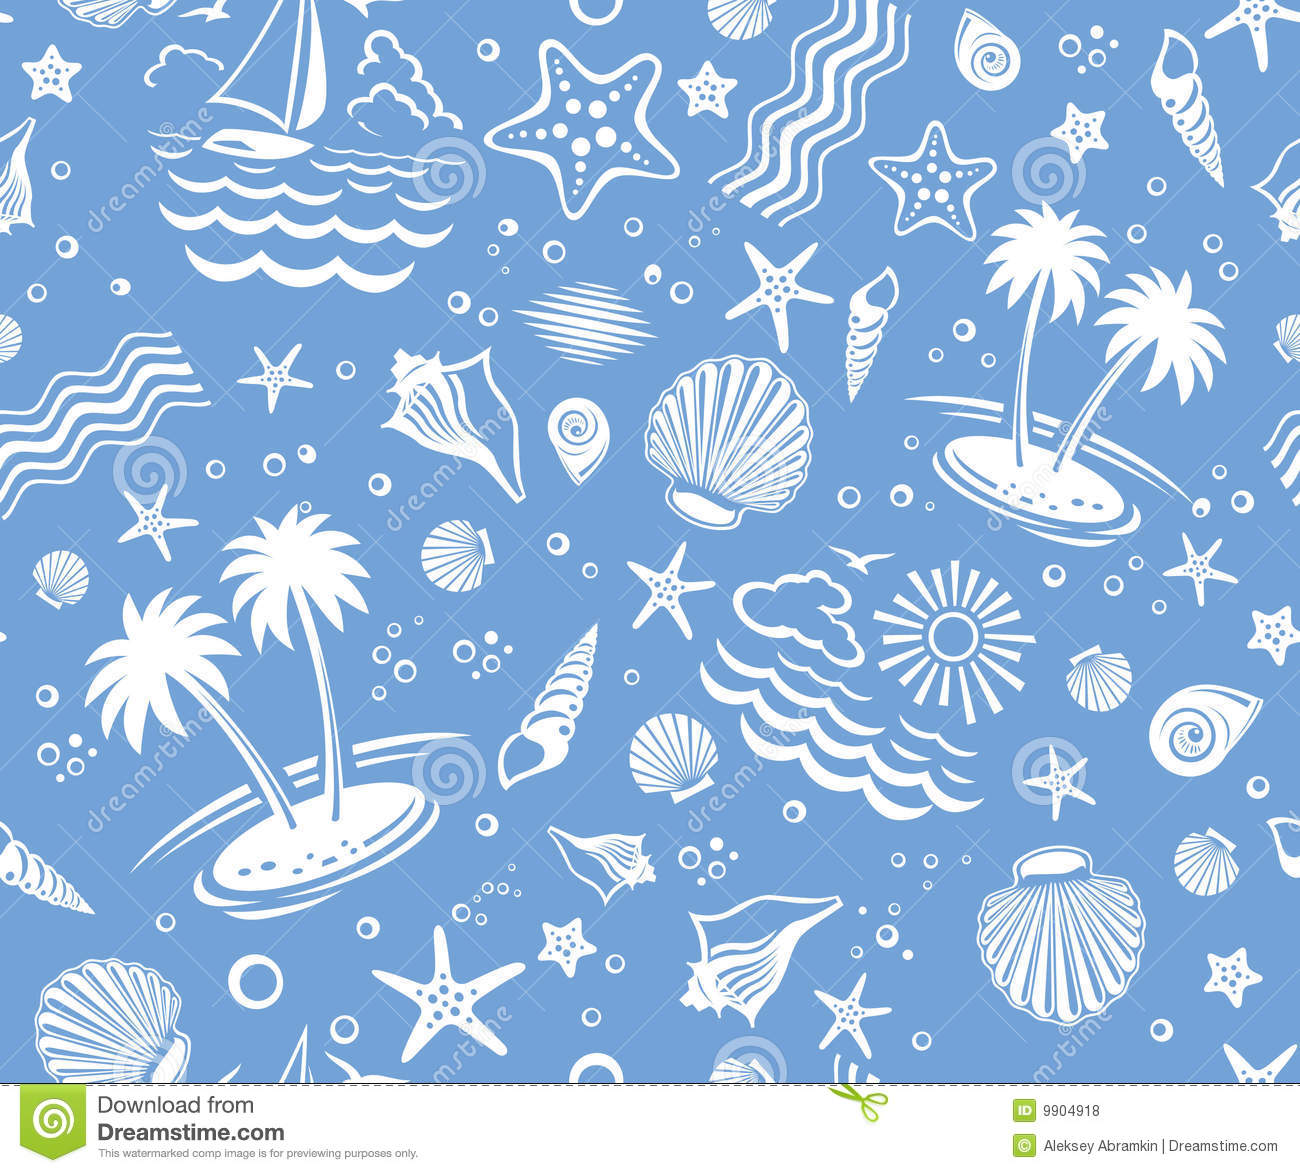 Fish Animation Wallpaper Free Download Seamless Beach Vector Pattern Royalty Free Stock Photos